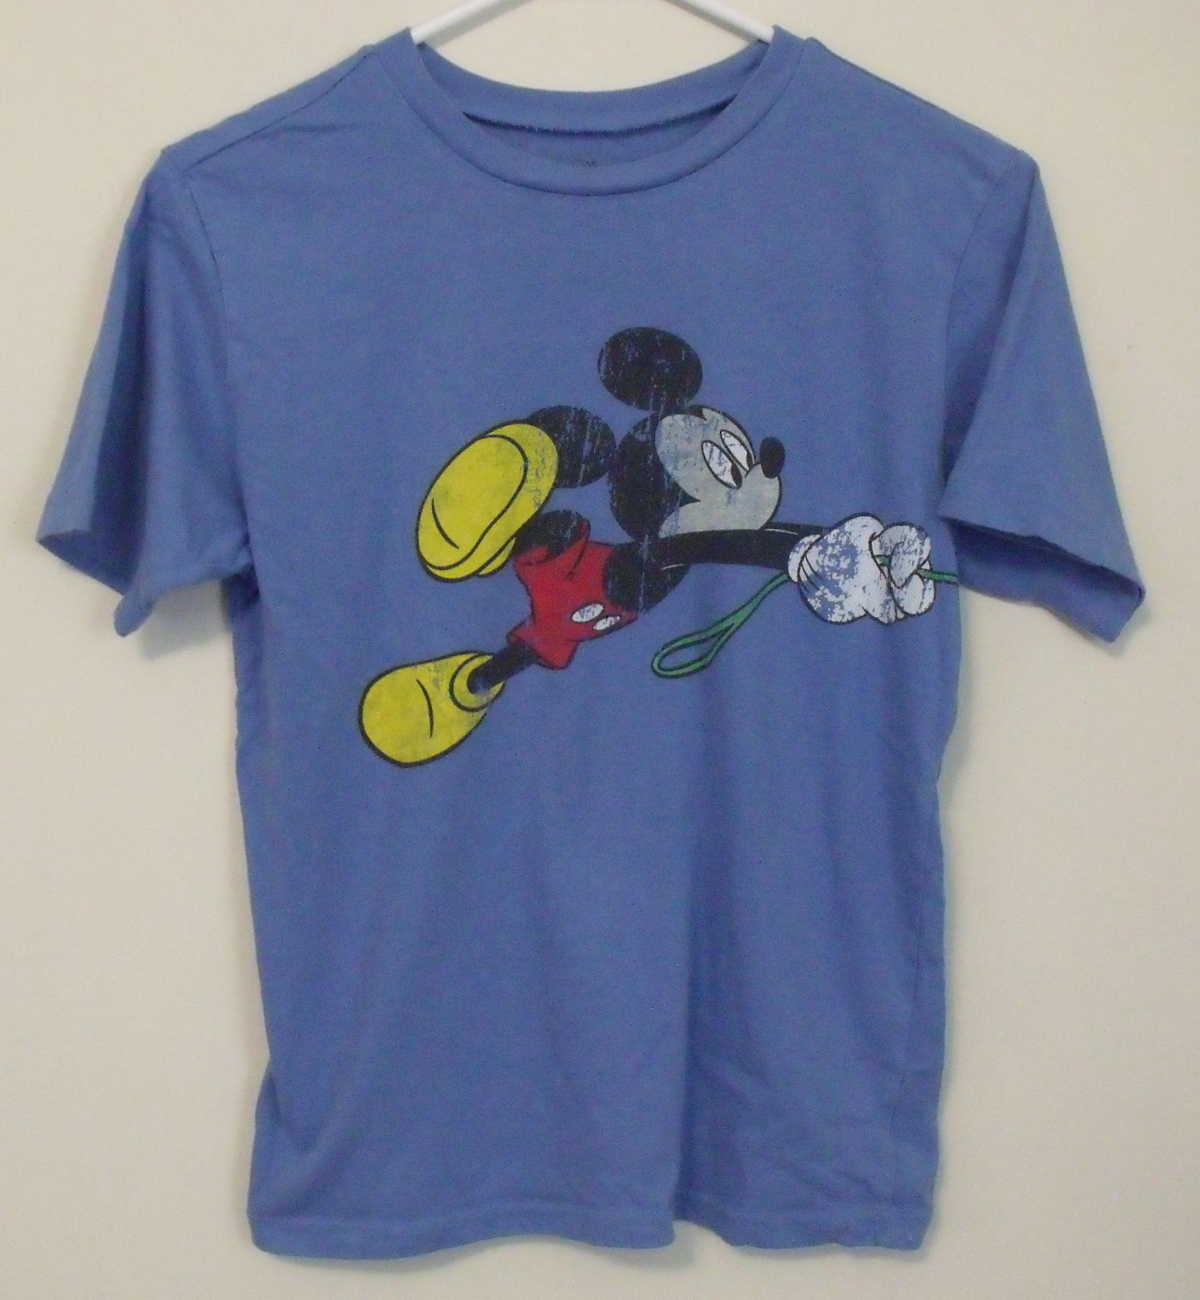 You searched for: disney shirt! Etsy is the home to thousands of handmade, vintage, and one-of-a-kind products and gifts related to your search. No matter what you're looking for or where you are in the world, our global marketplace of sellers can help you find unique and affordable options. Let's get started!